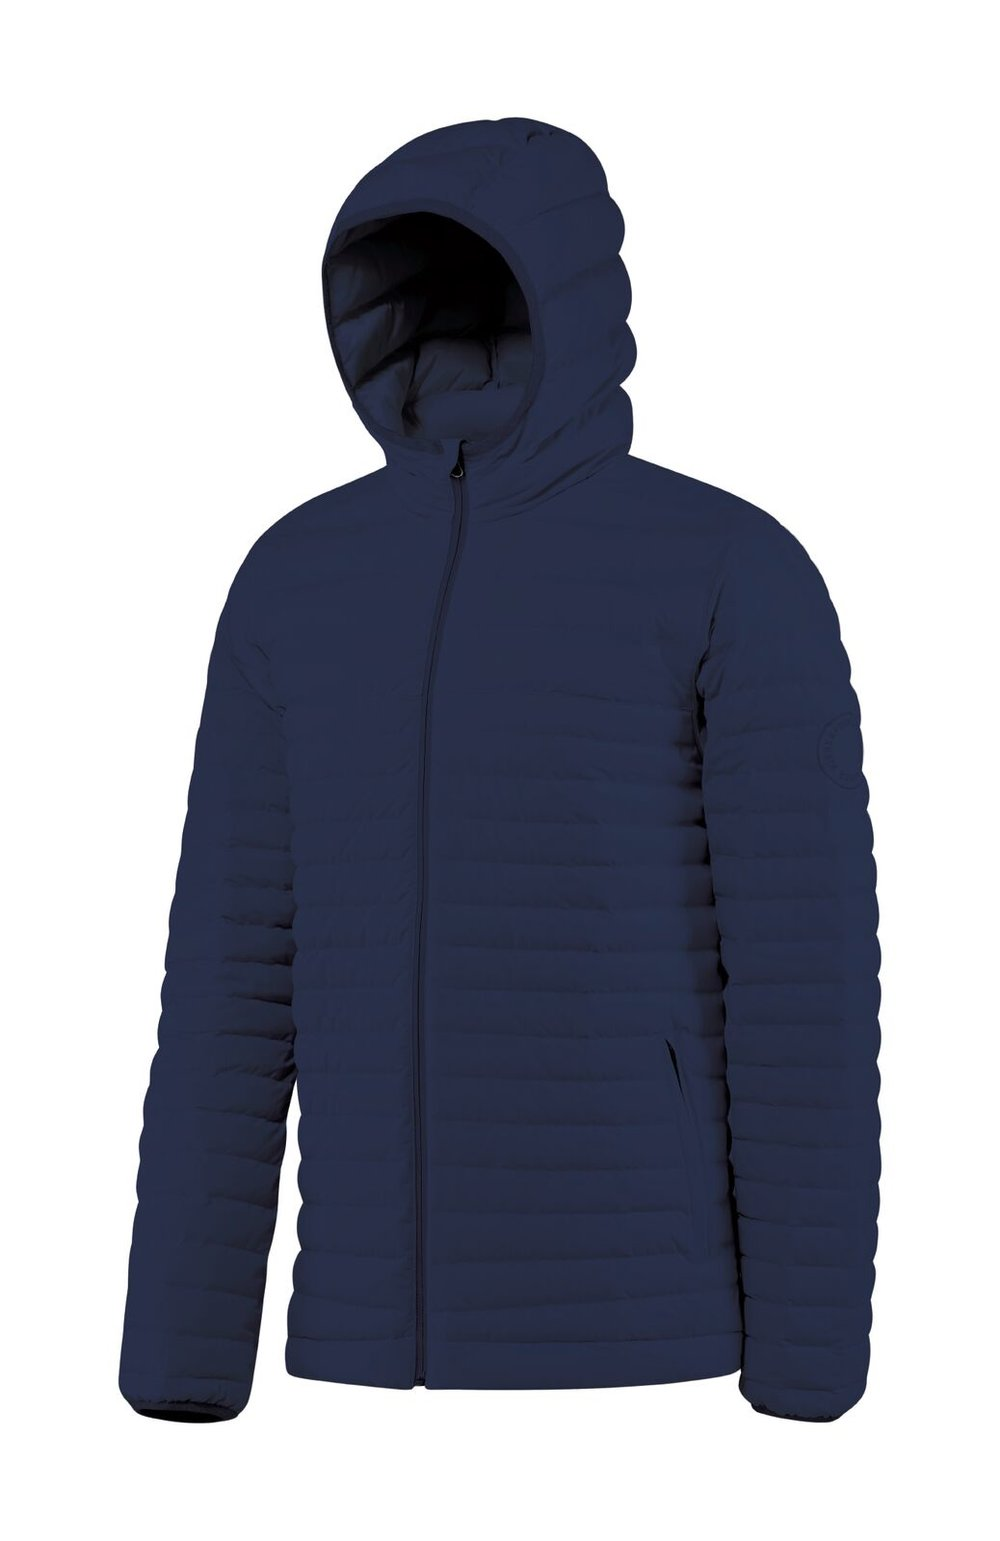 Passage_HoodedDownJacket_Navy_preview.jpeg